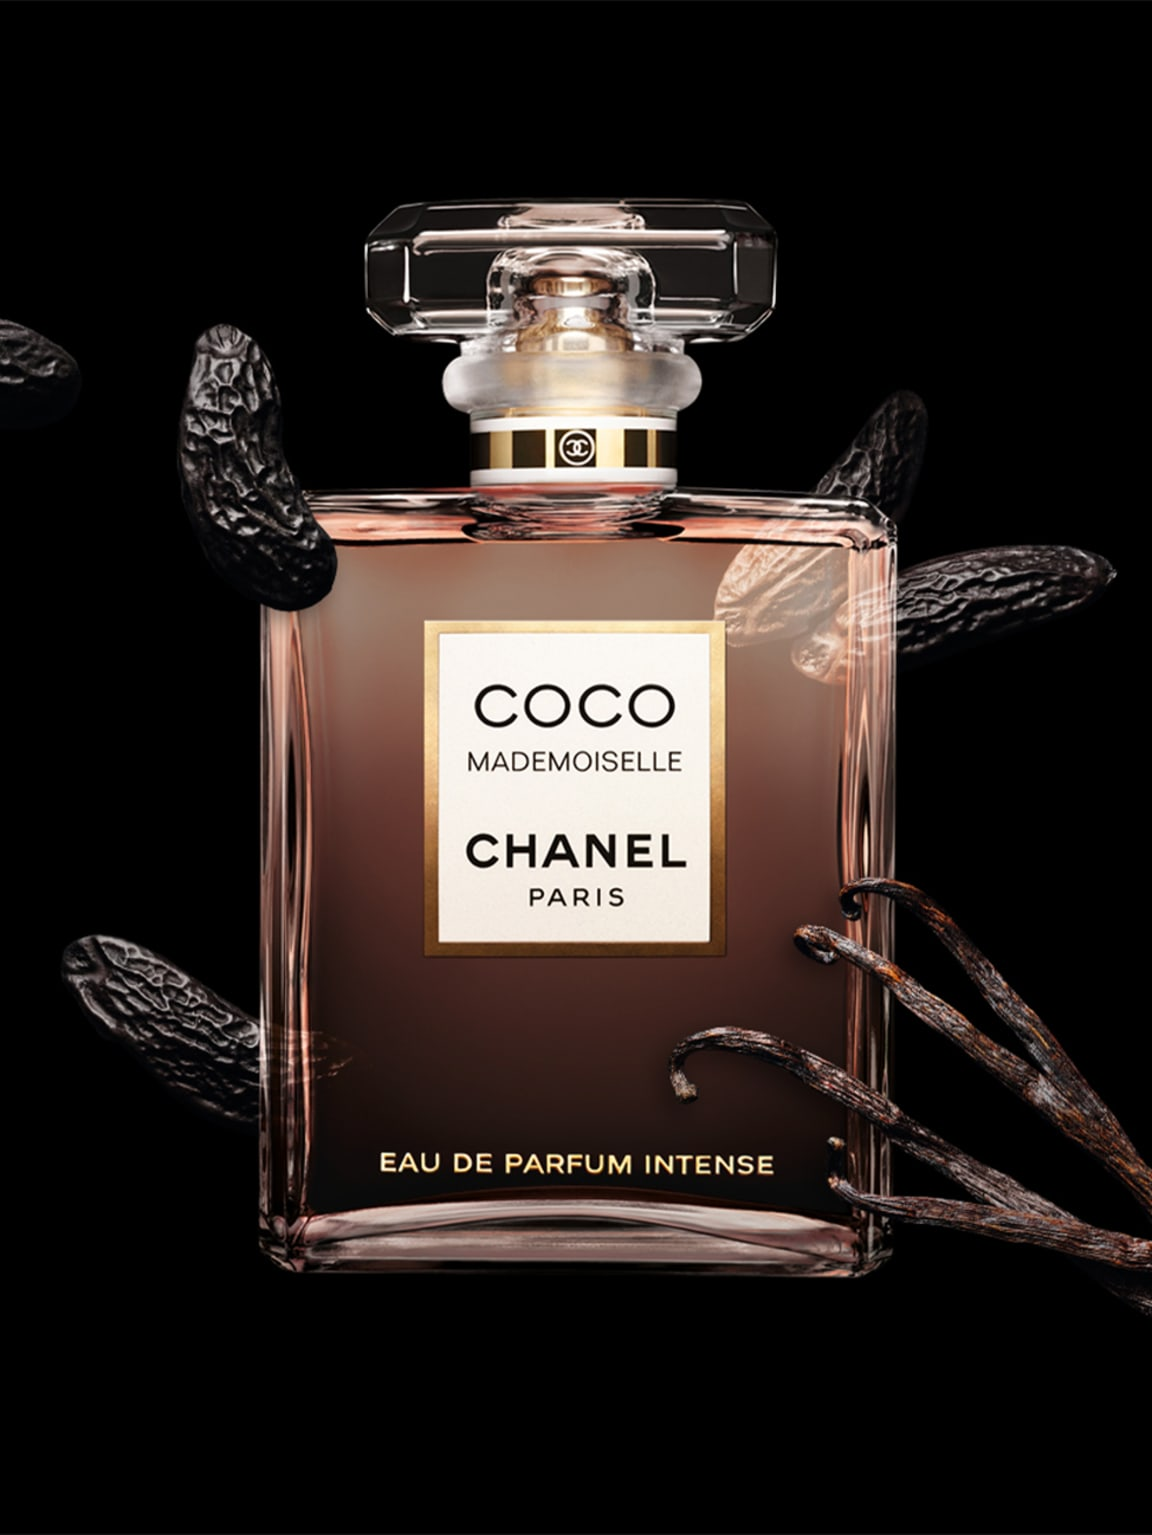 chanel coco mademoiselle intense - Online Discount Shop for Electronics, Apparel, Toys, Books, Games, Computers, Shoes, Jewelry, Watches, Baby Products, Sports & Outdoors, Office Products, Bed & Bath, Furniture, Tools, Hardware, Automotive